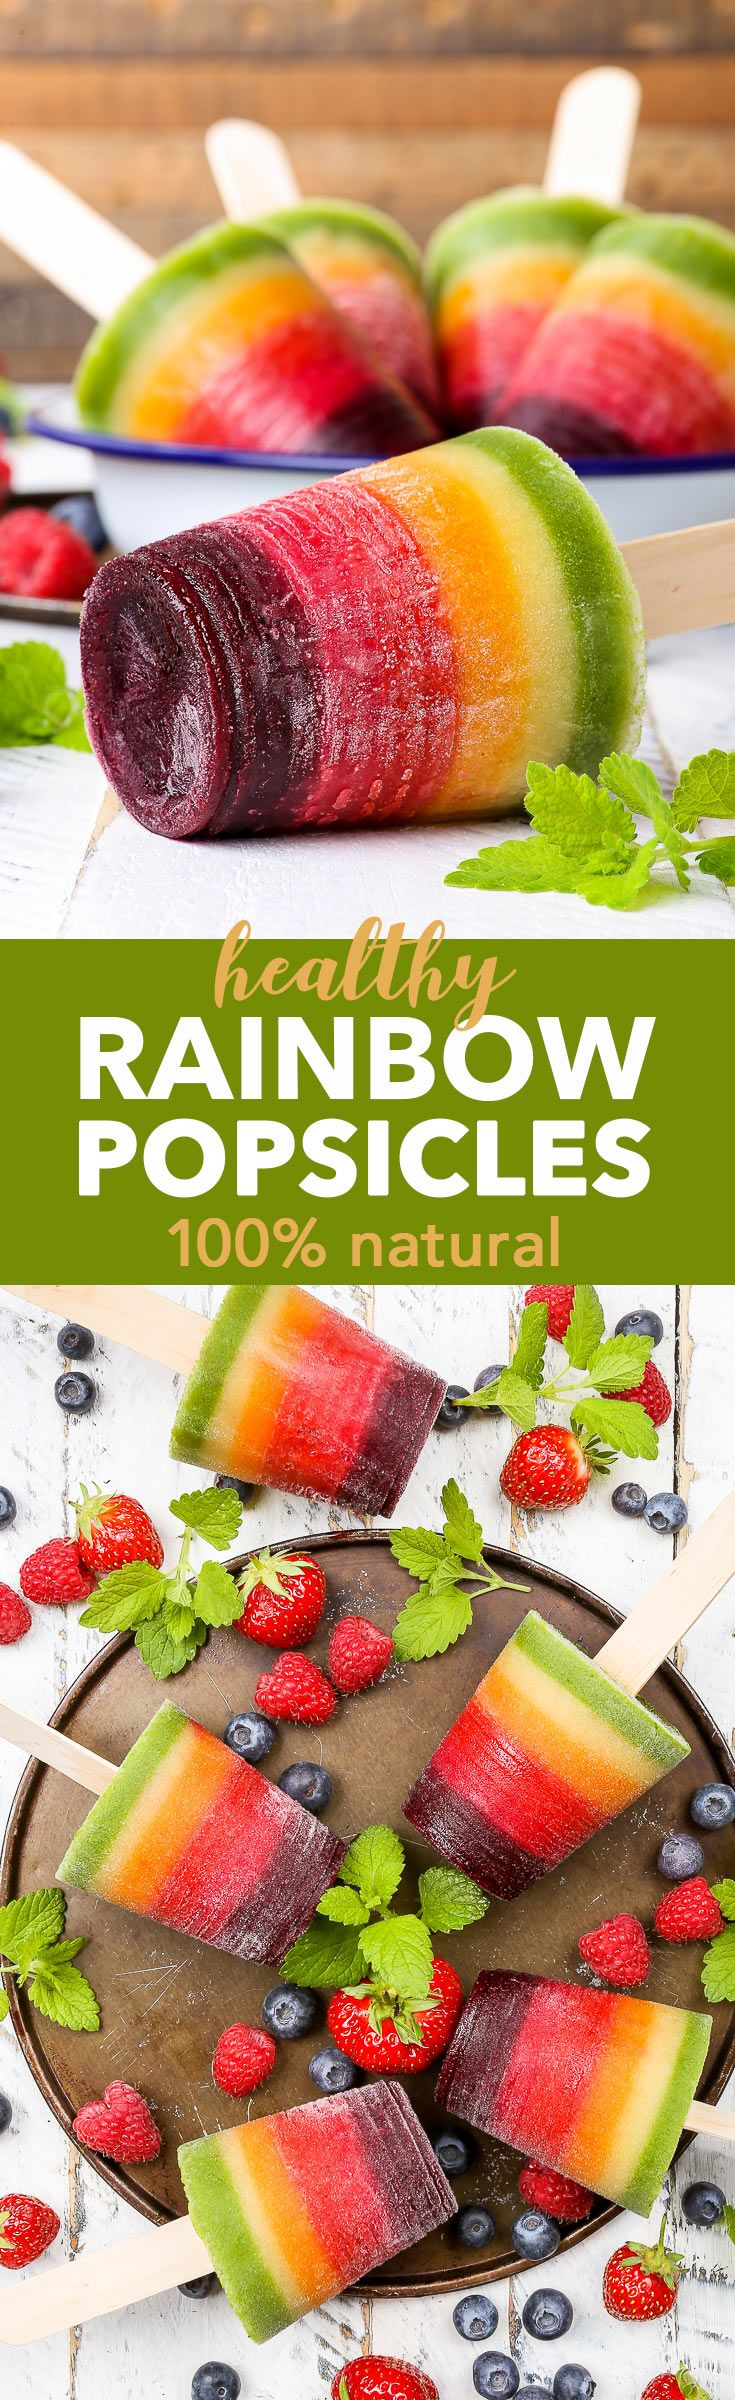 Healthy 100% Natural Rainbow Fruit Popsicles {gluten, dairy, egg, nut, soy & refined sugar free, vegan & paleo} - These healthy rainbow fruit popsicles are 100% natural, made with no artificial dyes or food colourings. Just wholesome, plant-based ingredie